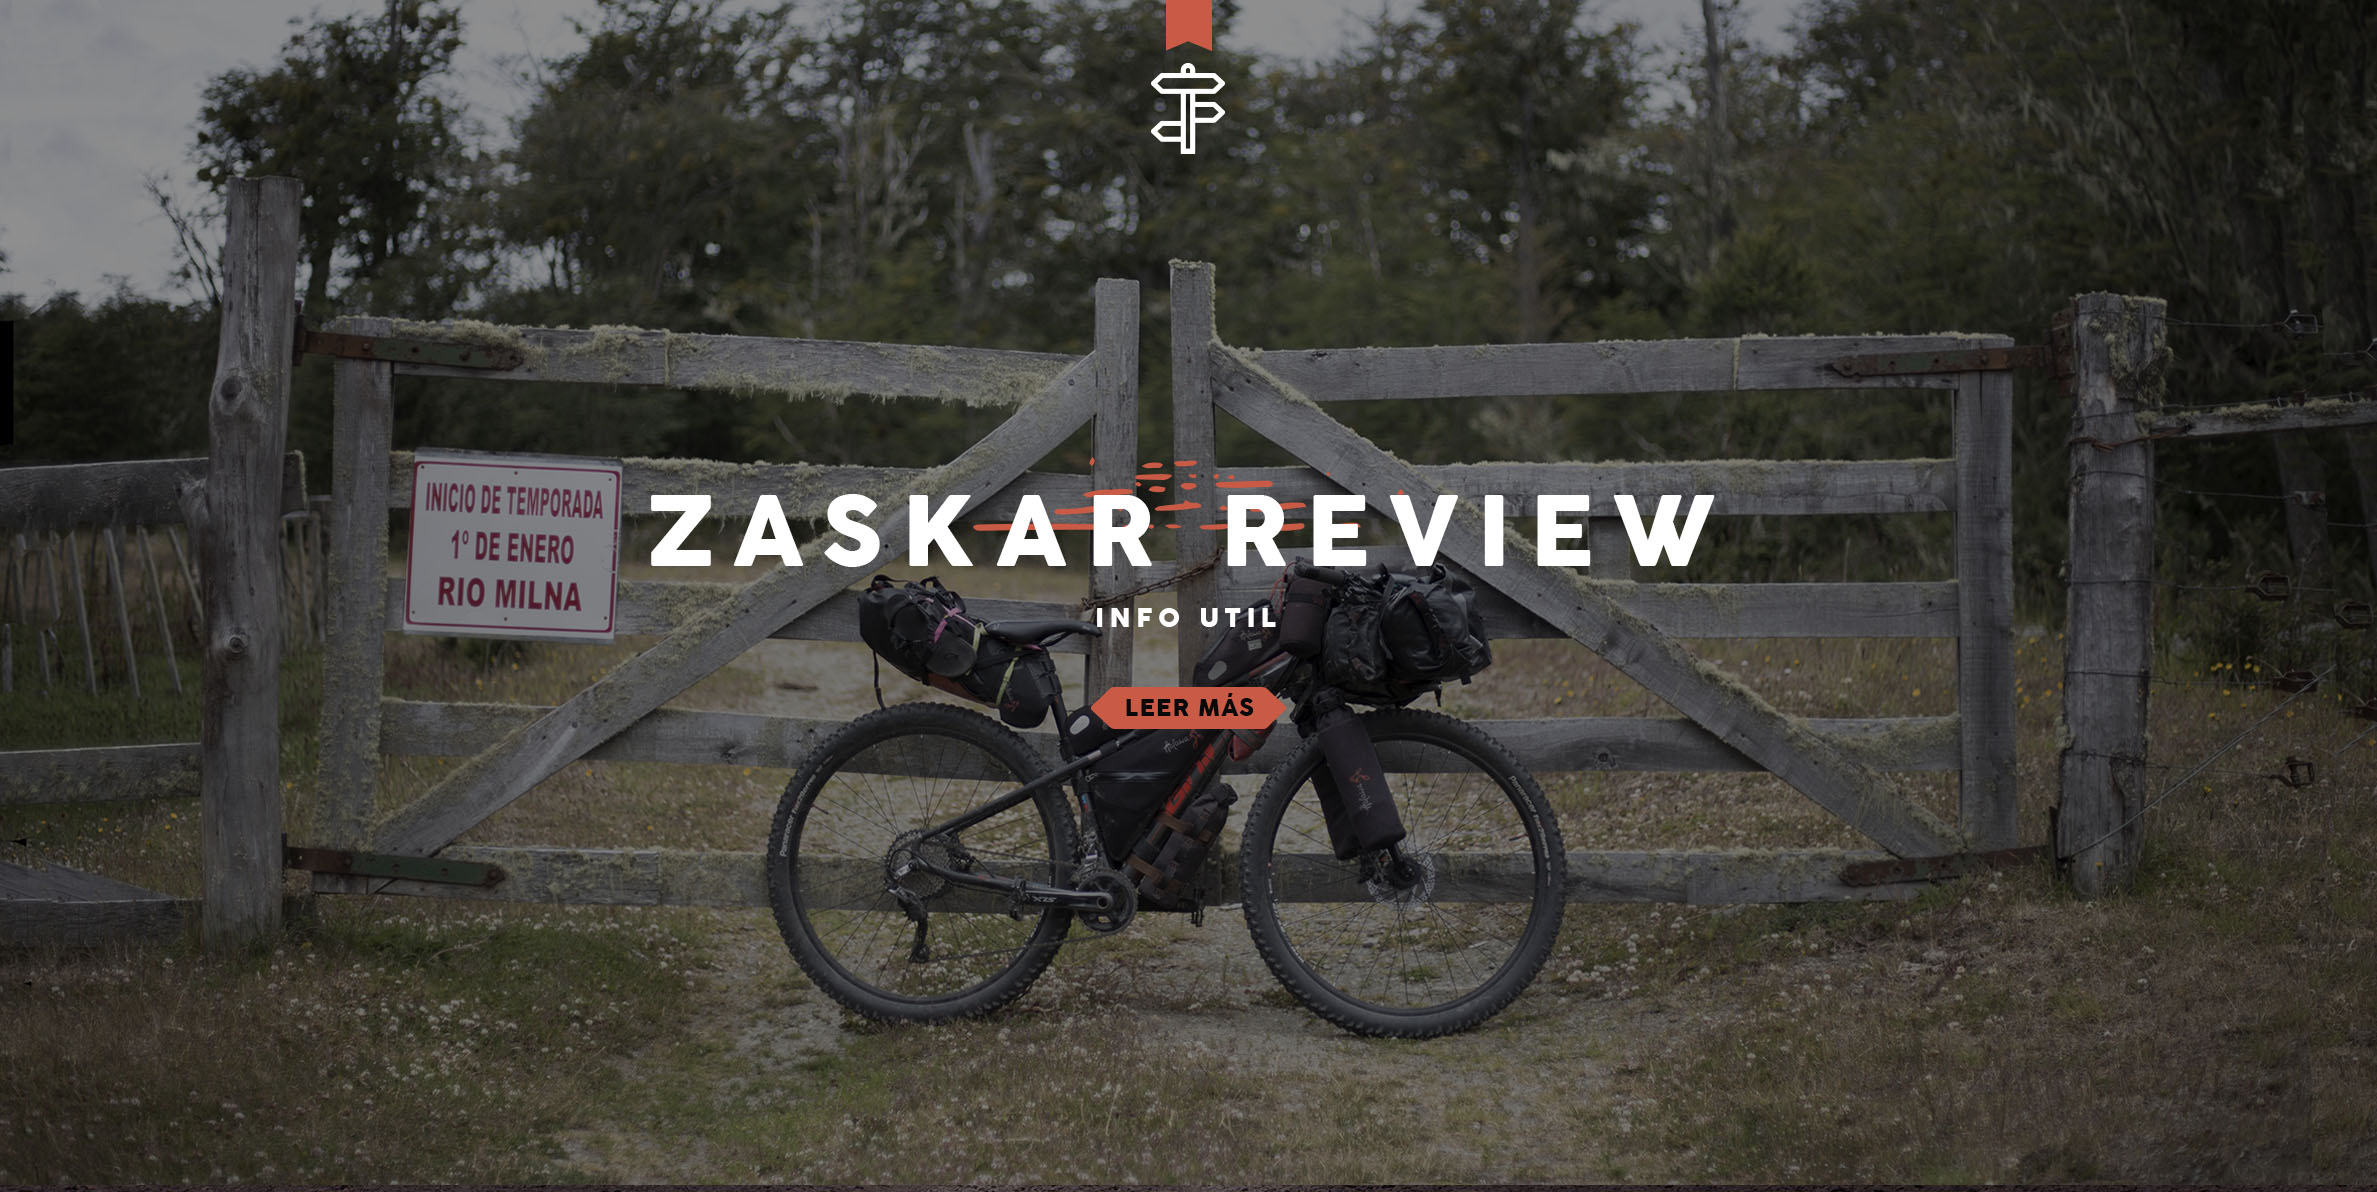 ZASKAR REVIEW